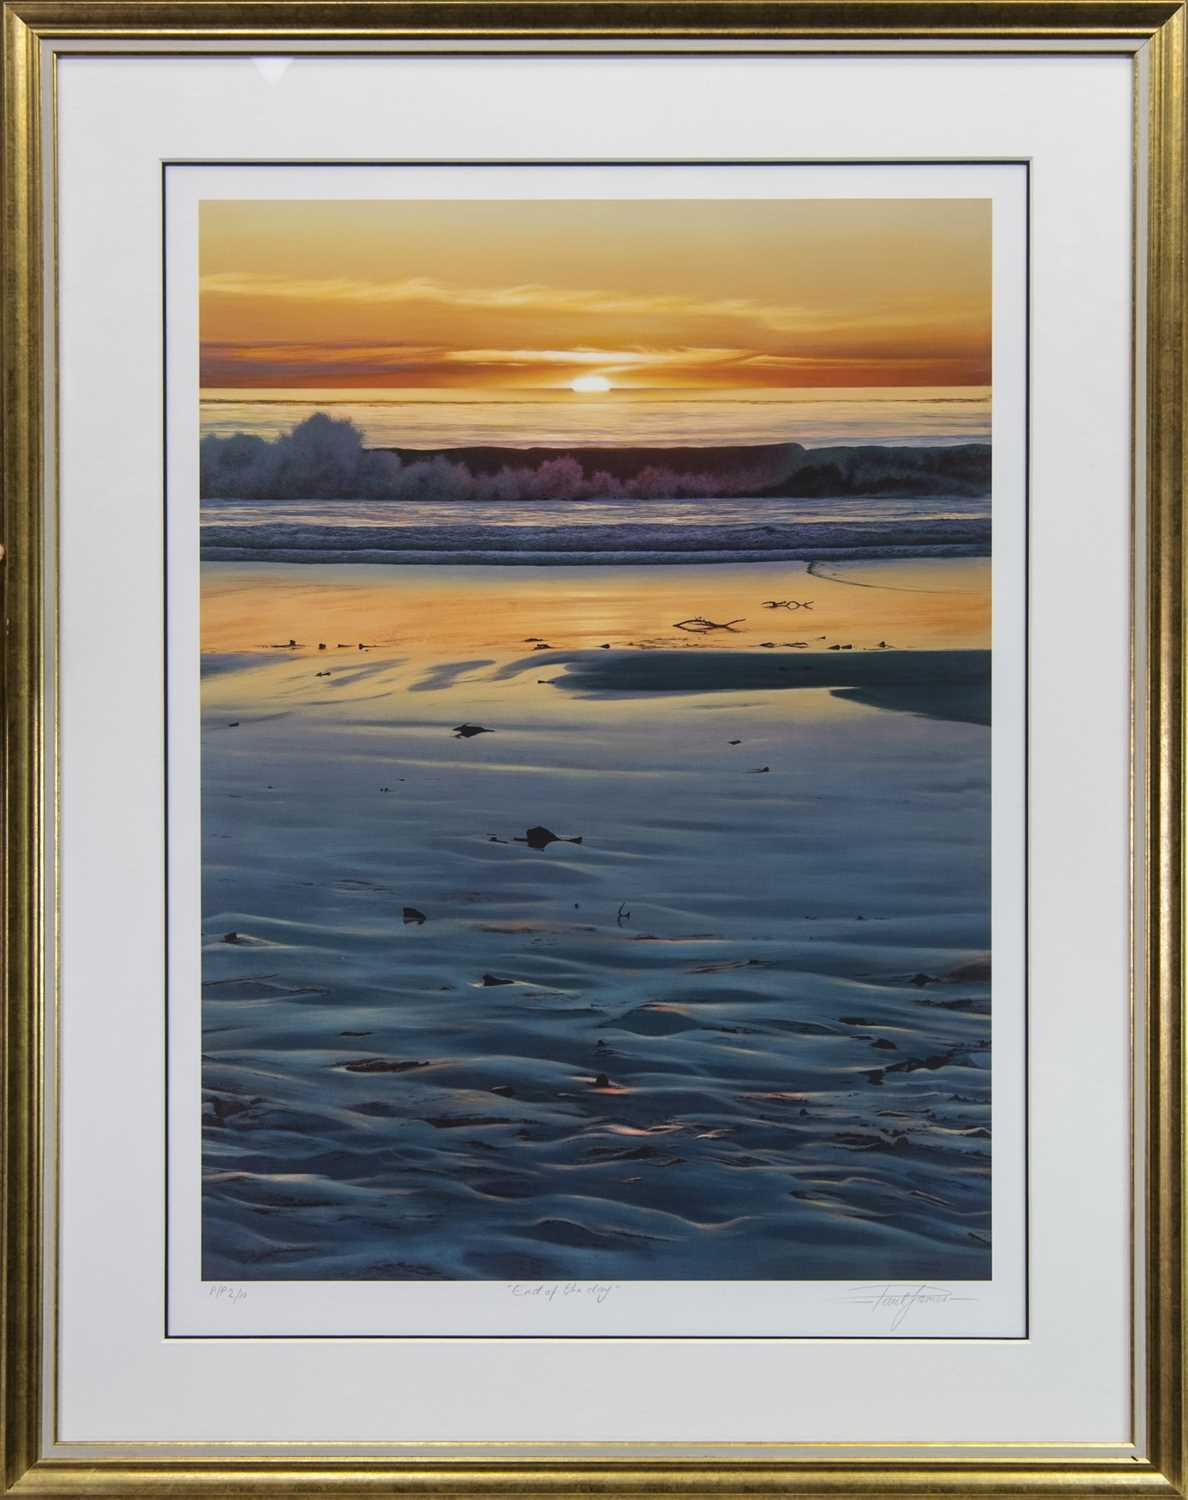 Lot 109 - END OF THE DAY, A PRINT BY PAUL JAMES